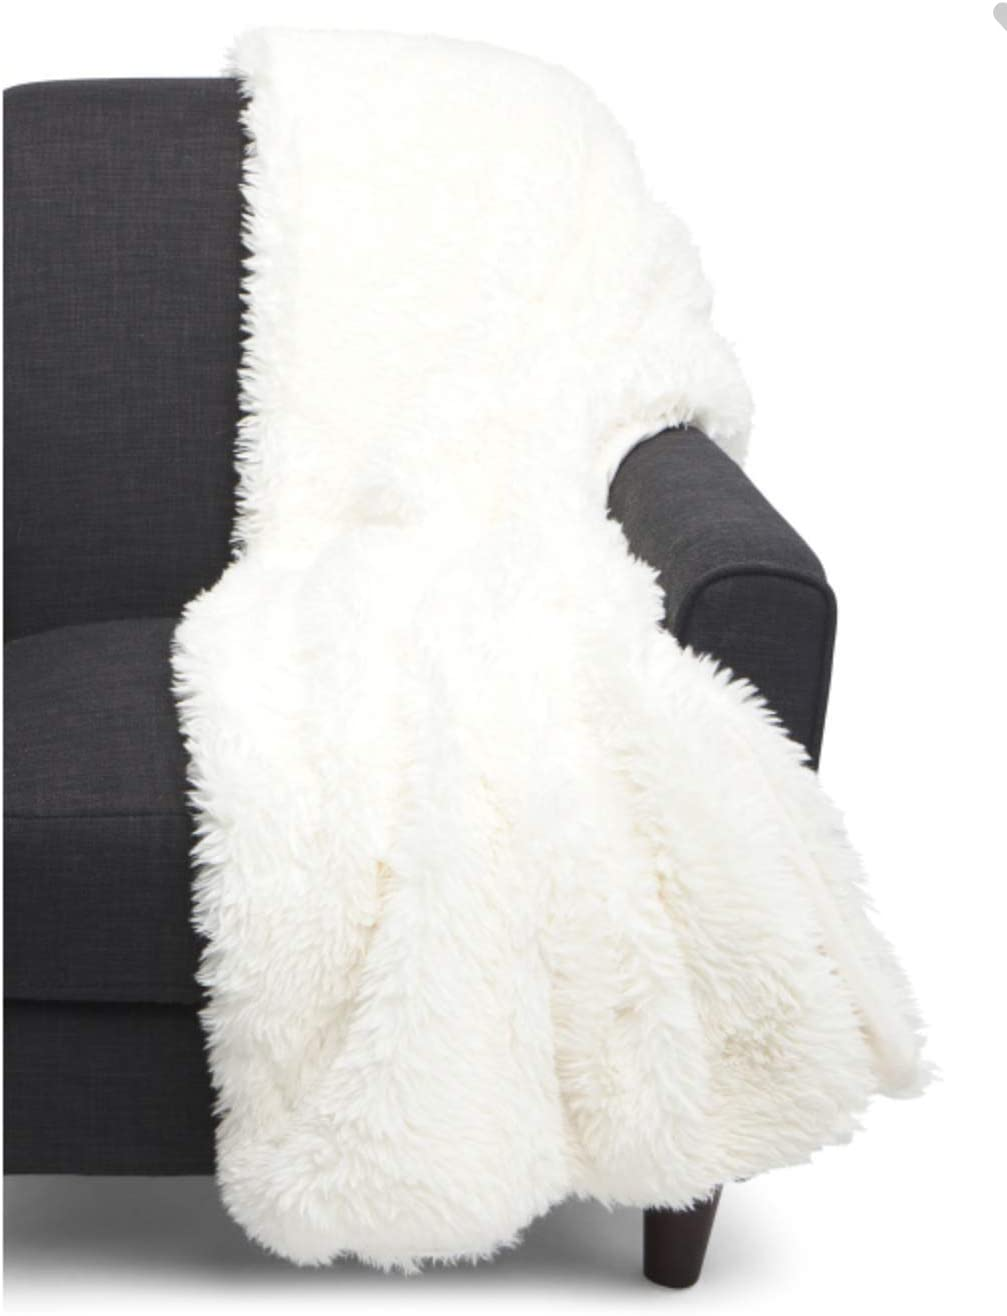 Tahari Home Mink Faux Fur Throw Blanket Shaggy Soft in Ivory